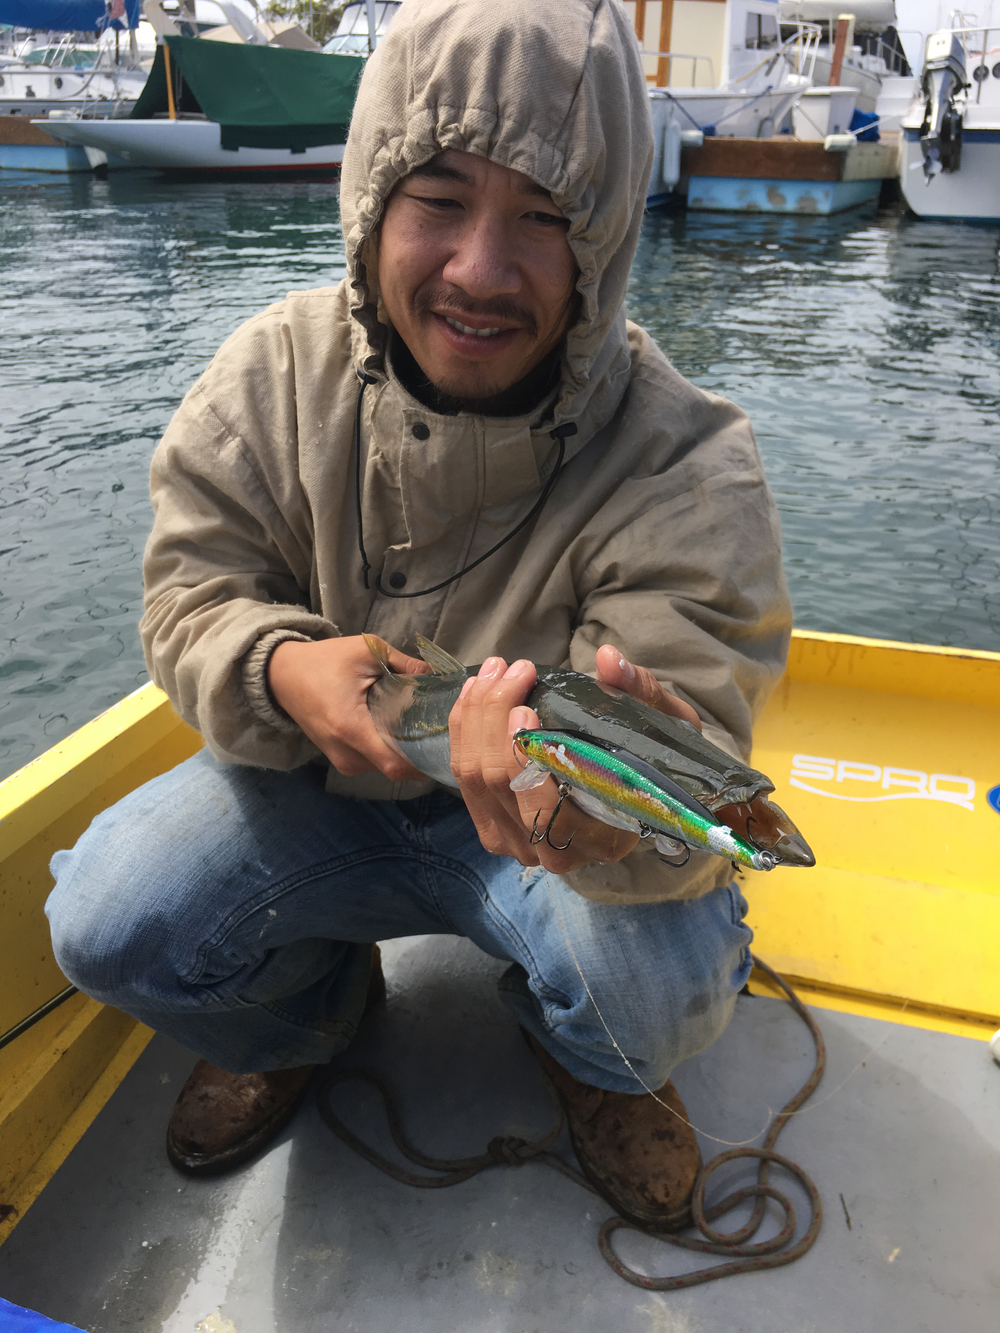 Michael Tran with a legal Barracuda